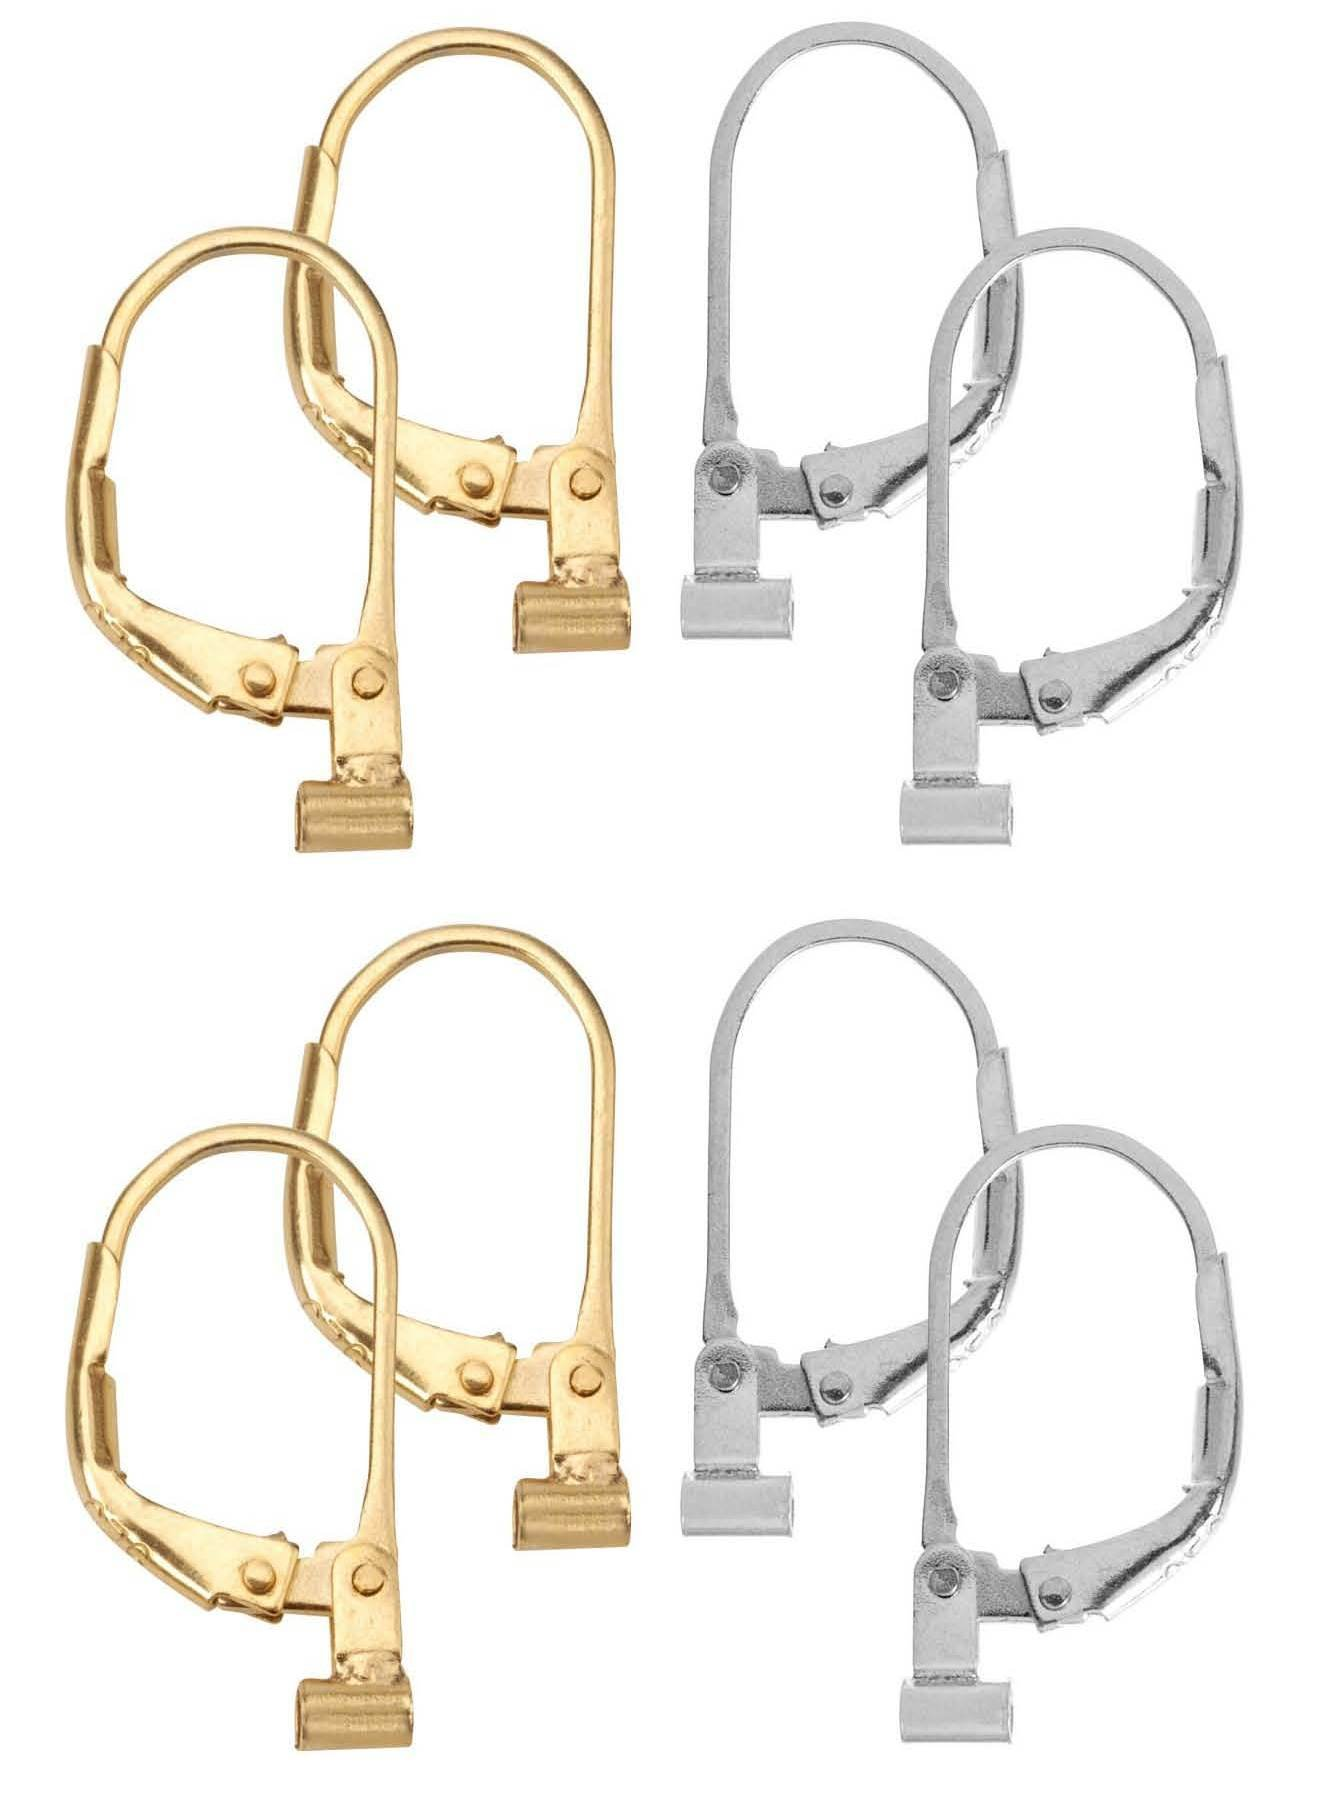 Convertiblez 4 Pair of Earring Converters Post to Lever Back Combo 2 Pair Gold 2 Pair Silver